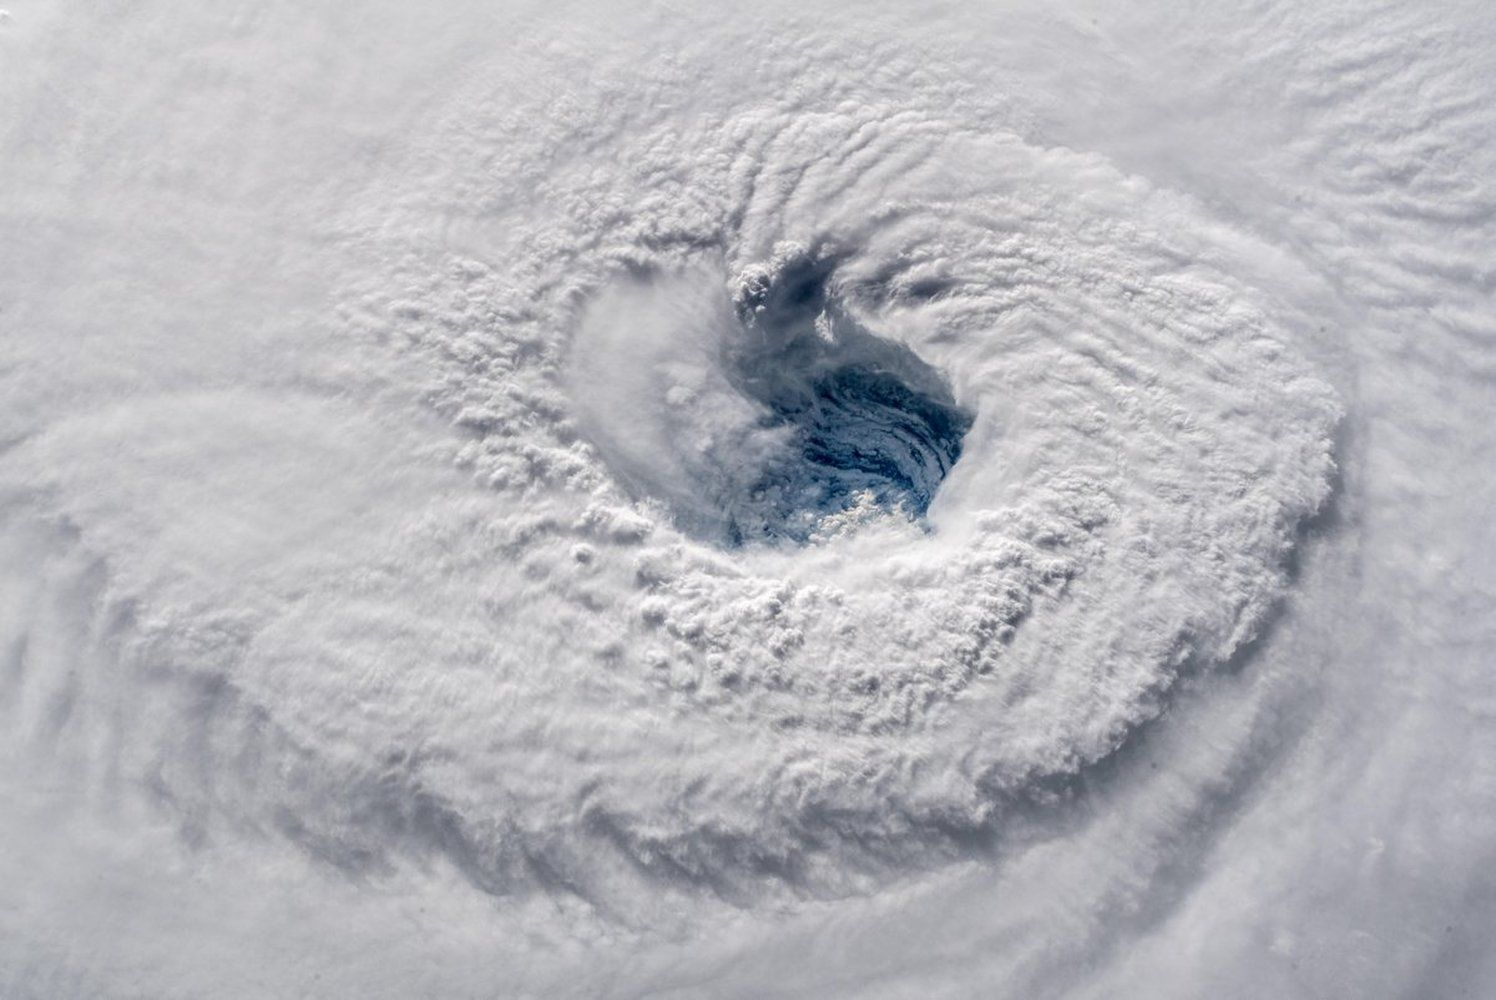 Hurricane Florence Photos Of A Monster Storm Nasa Images Image Of The Day How To Take Photos